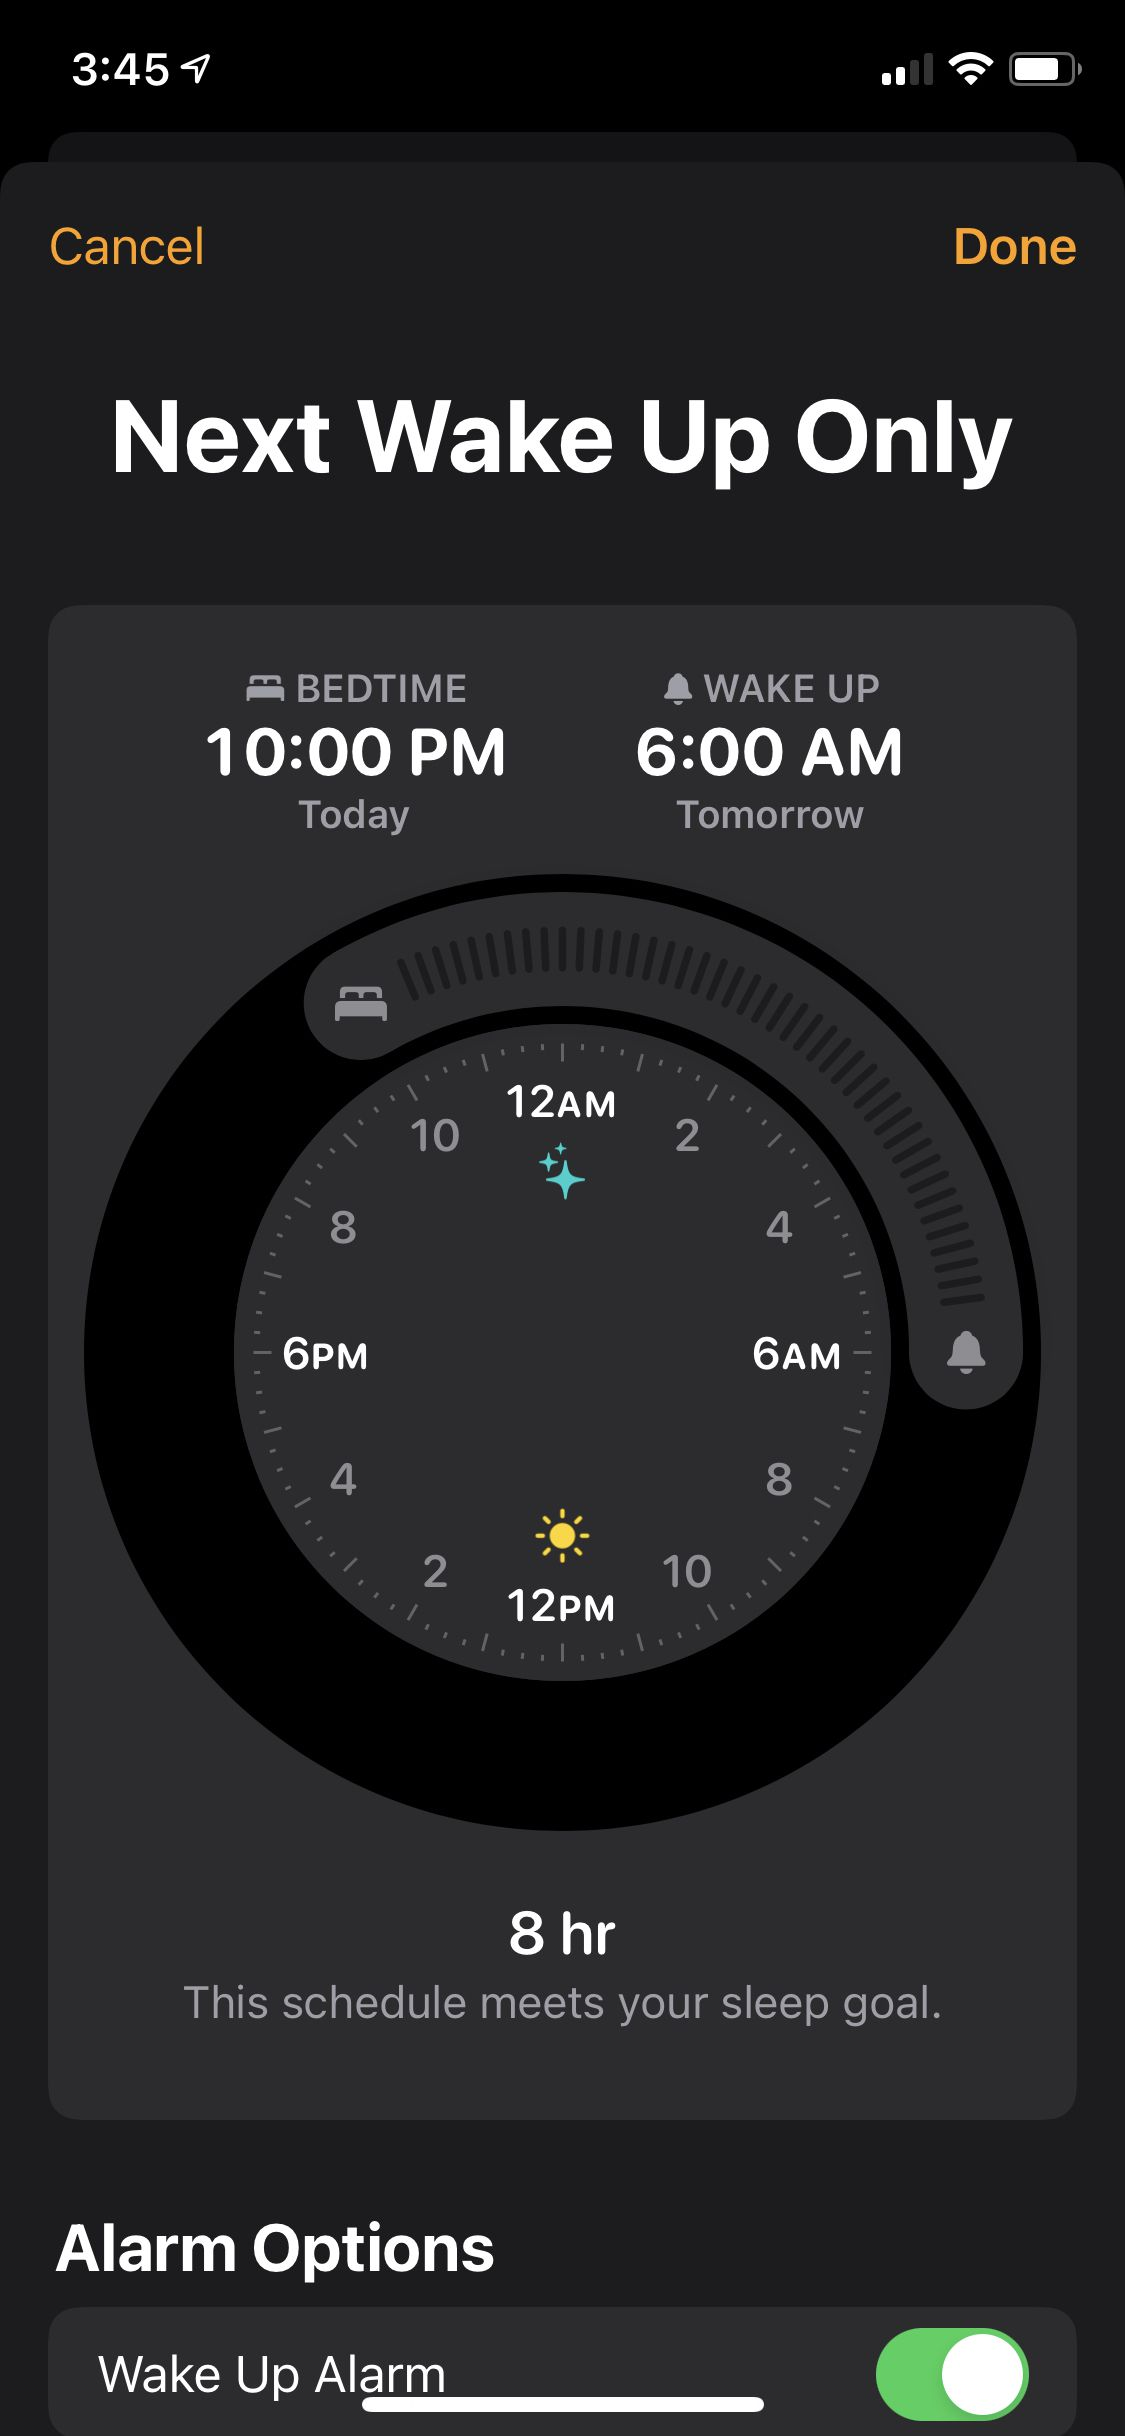 Apple has a new bedtime feature that works but is restrictive when it comes to DND options.